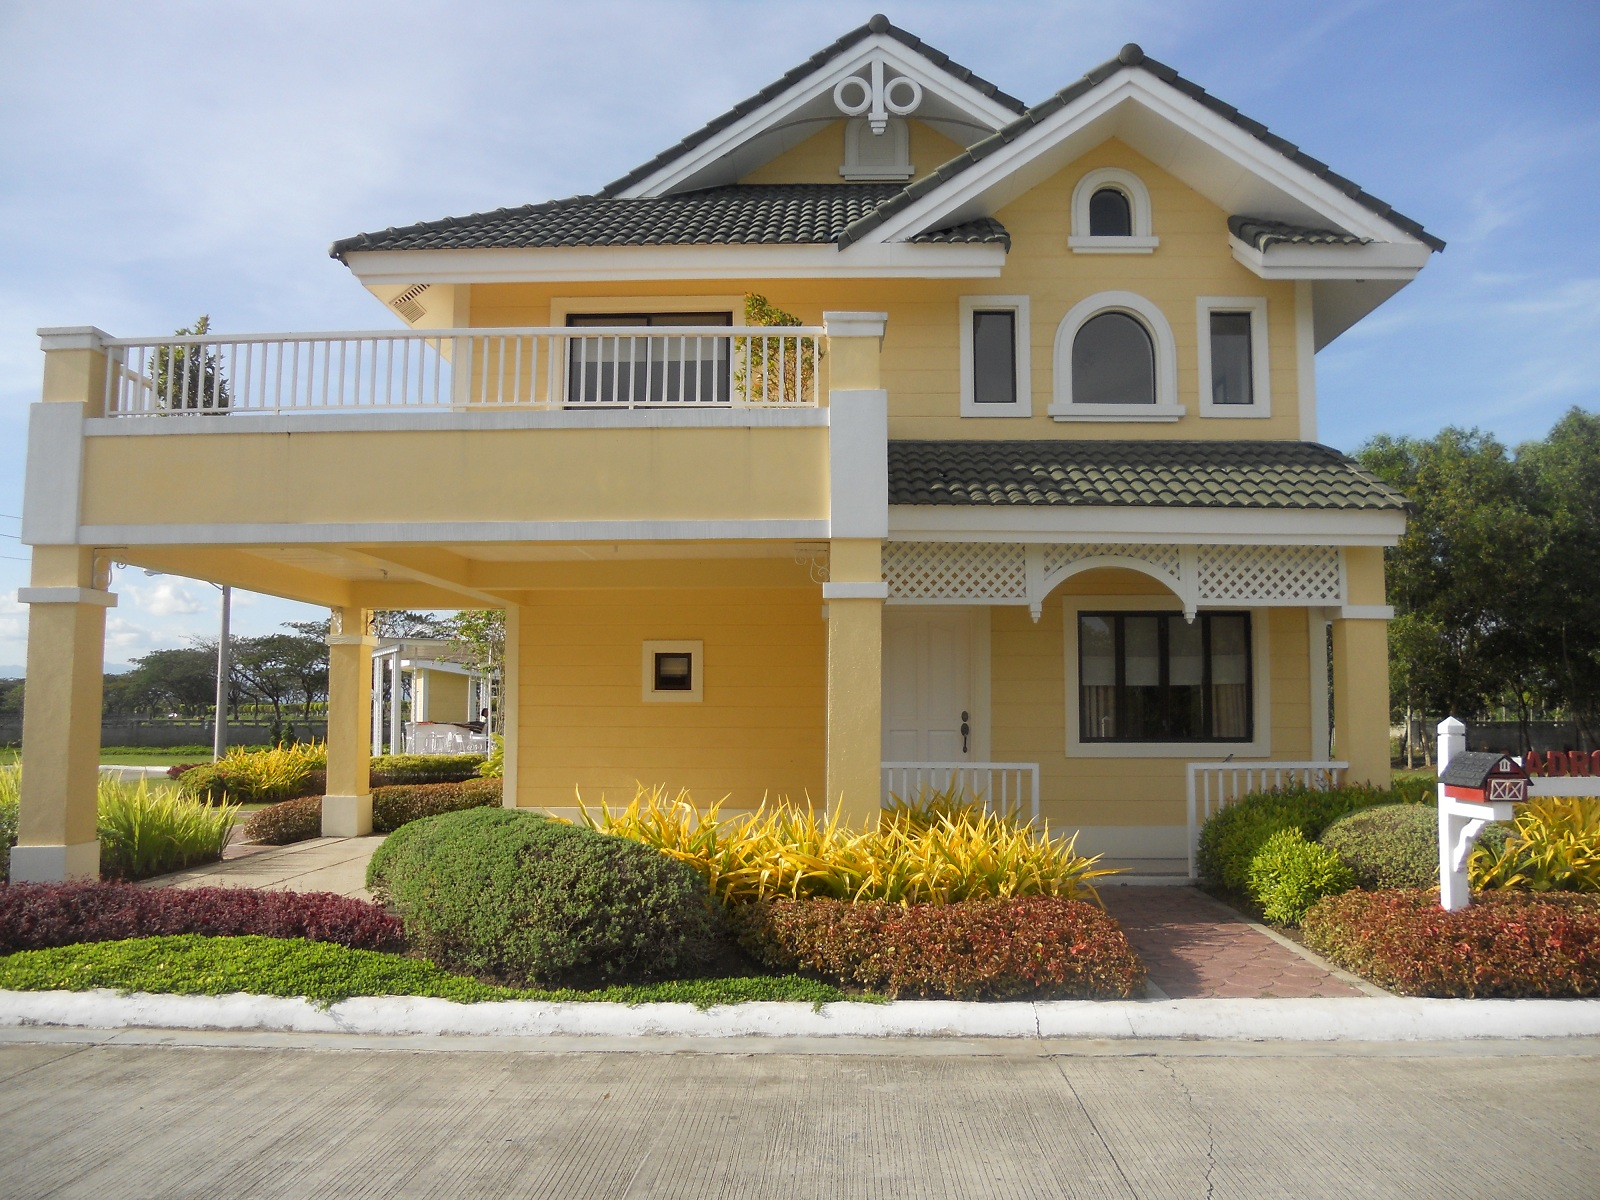 Lladro Model House Of Savannah Crest Iloilo By Camella: latest model houses